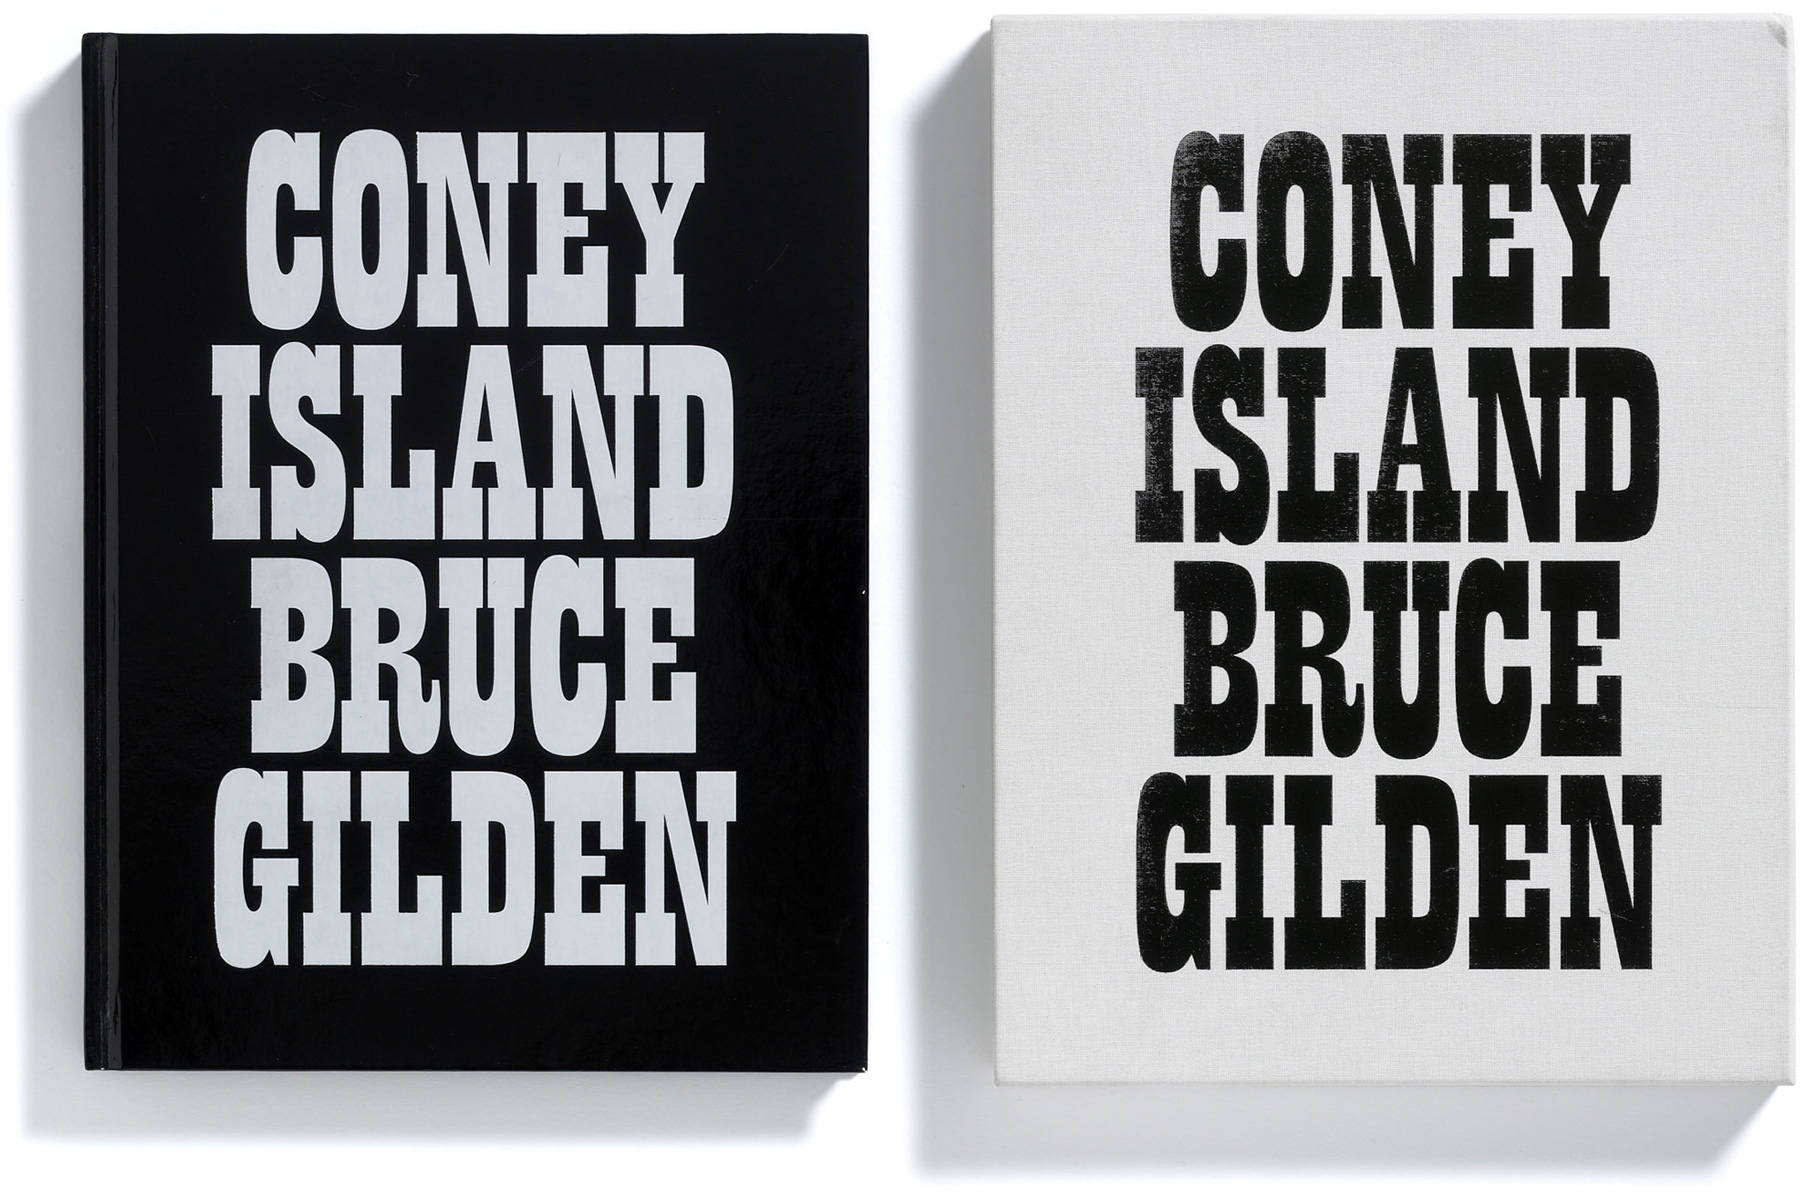 Coney Island Book by Bruce Gilden, published by Browns Editions, Browns Design